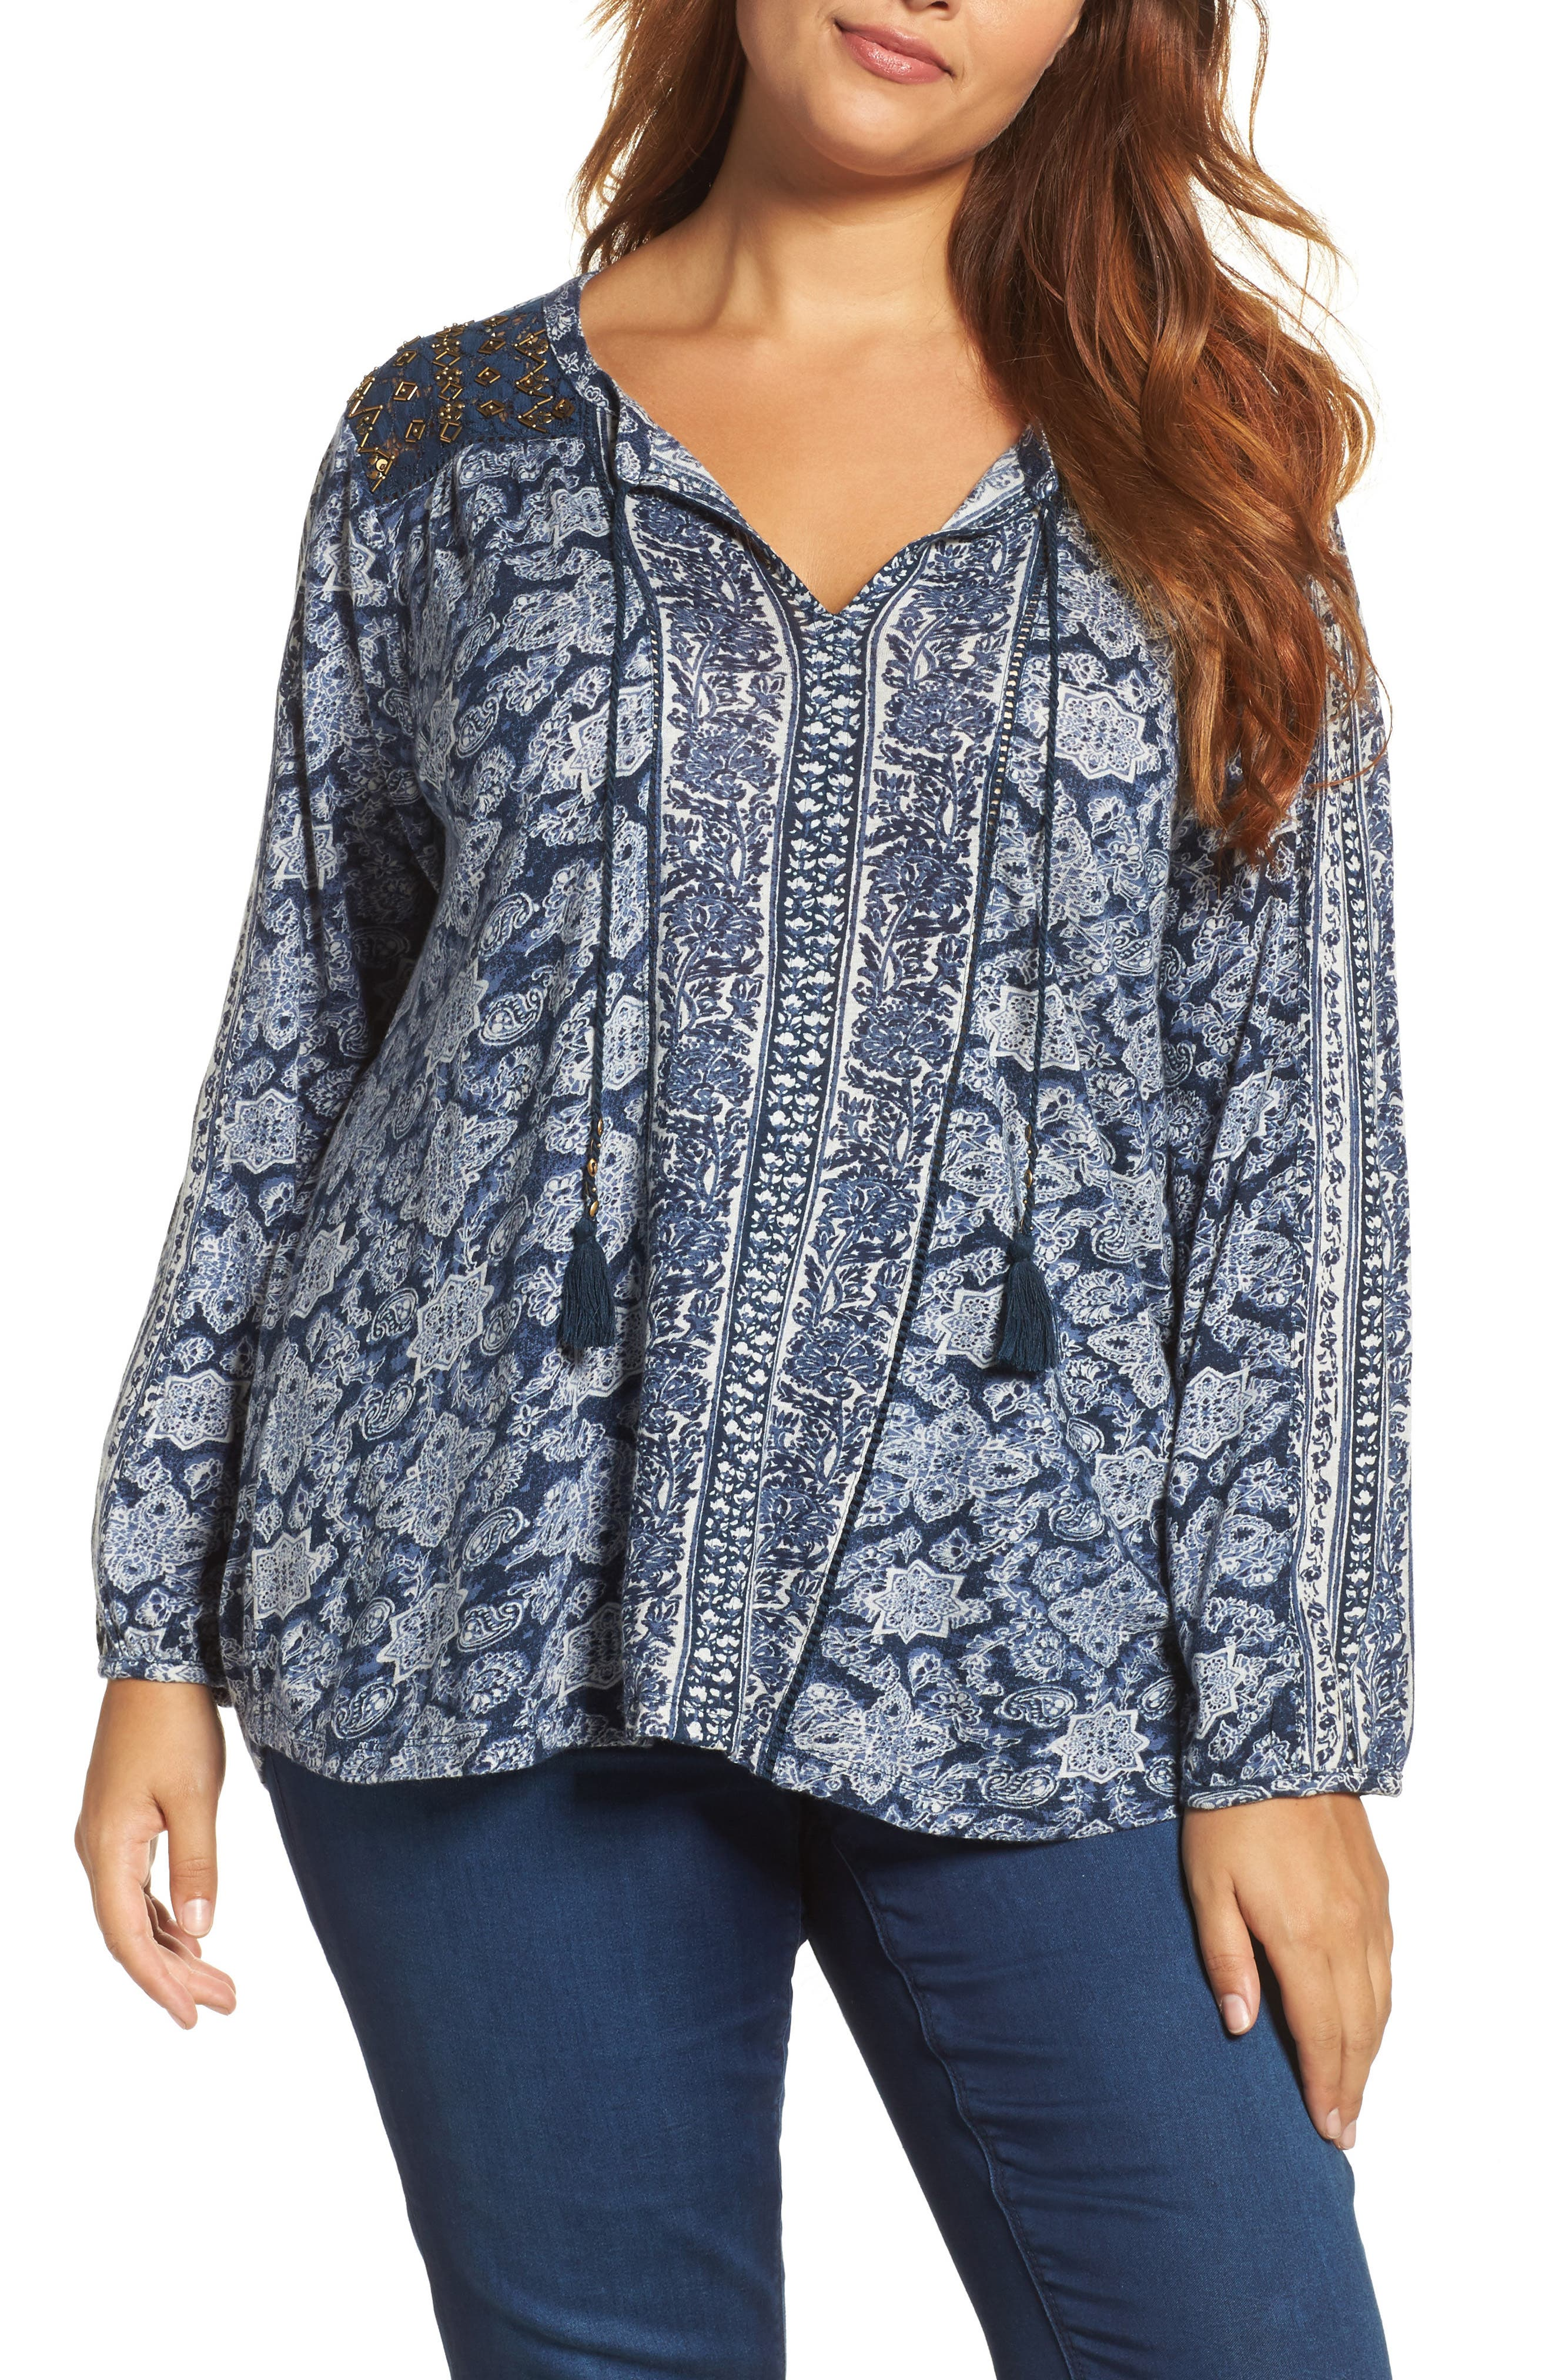 Alternate Image 1 Selected - Lukcy Brand Beaded Mixed Print Top (Plus Size)